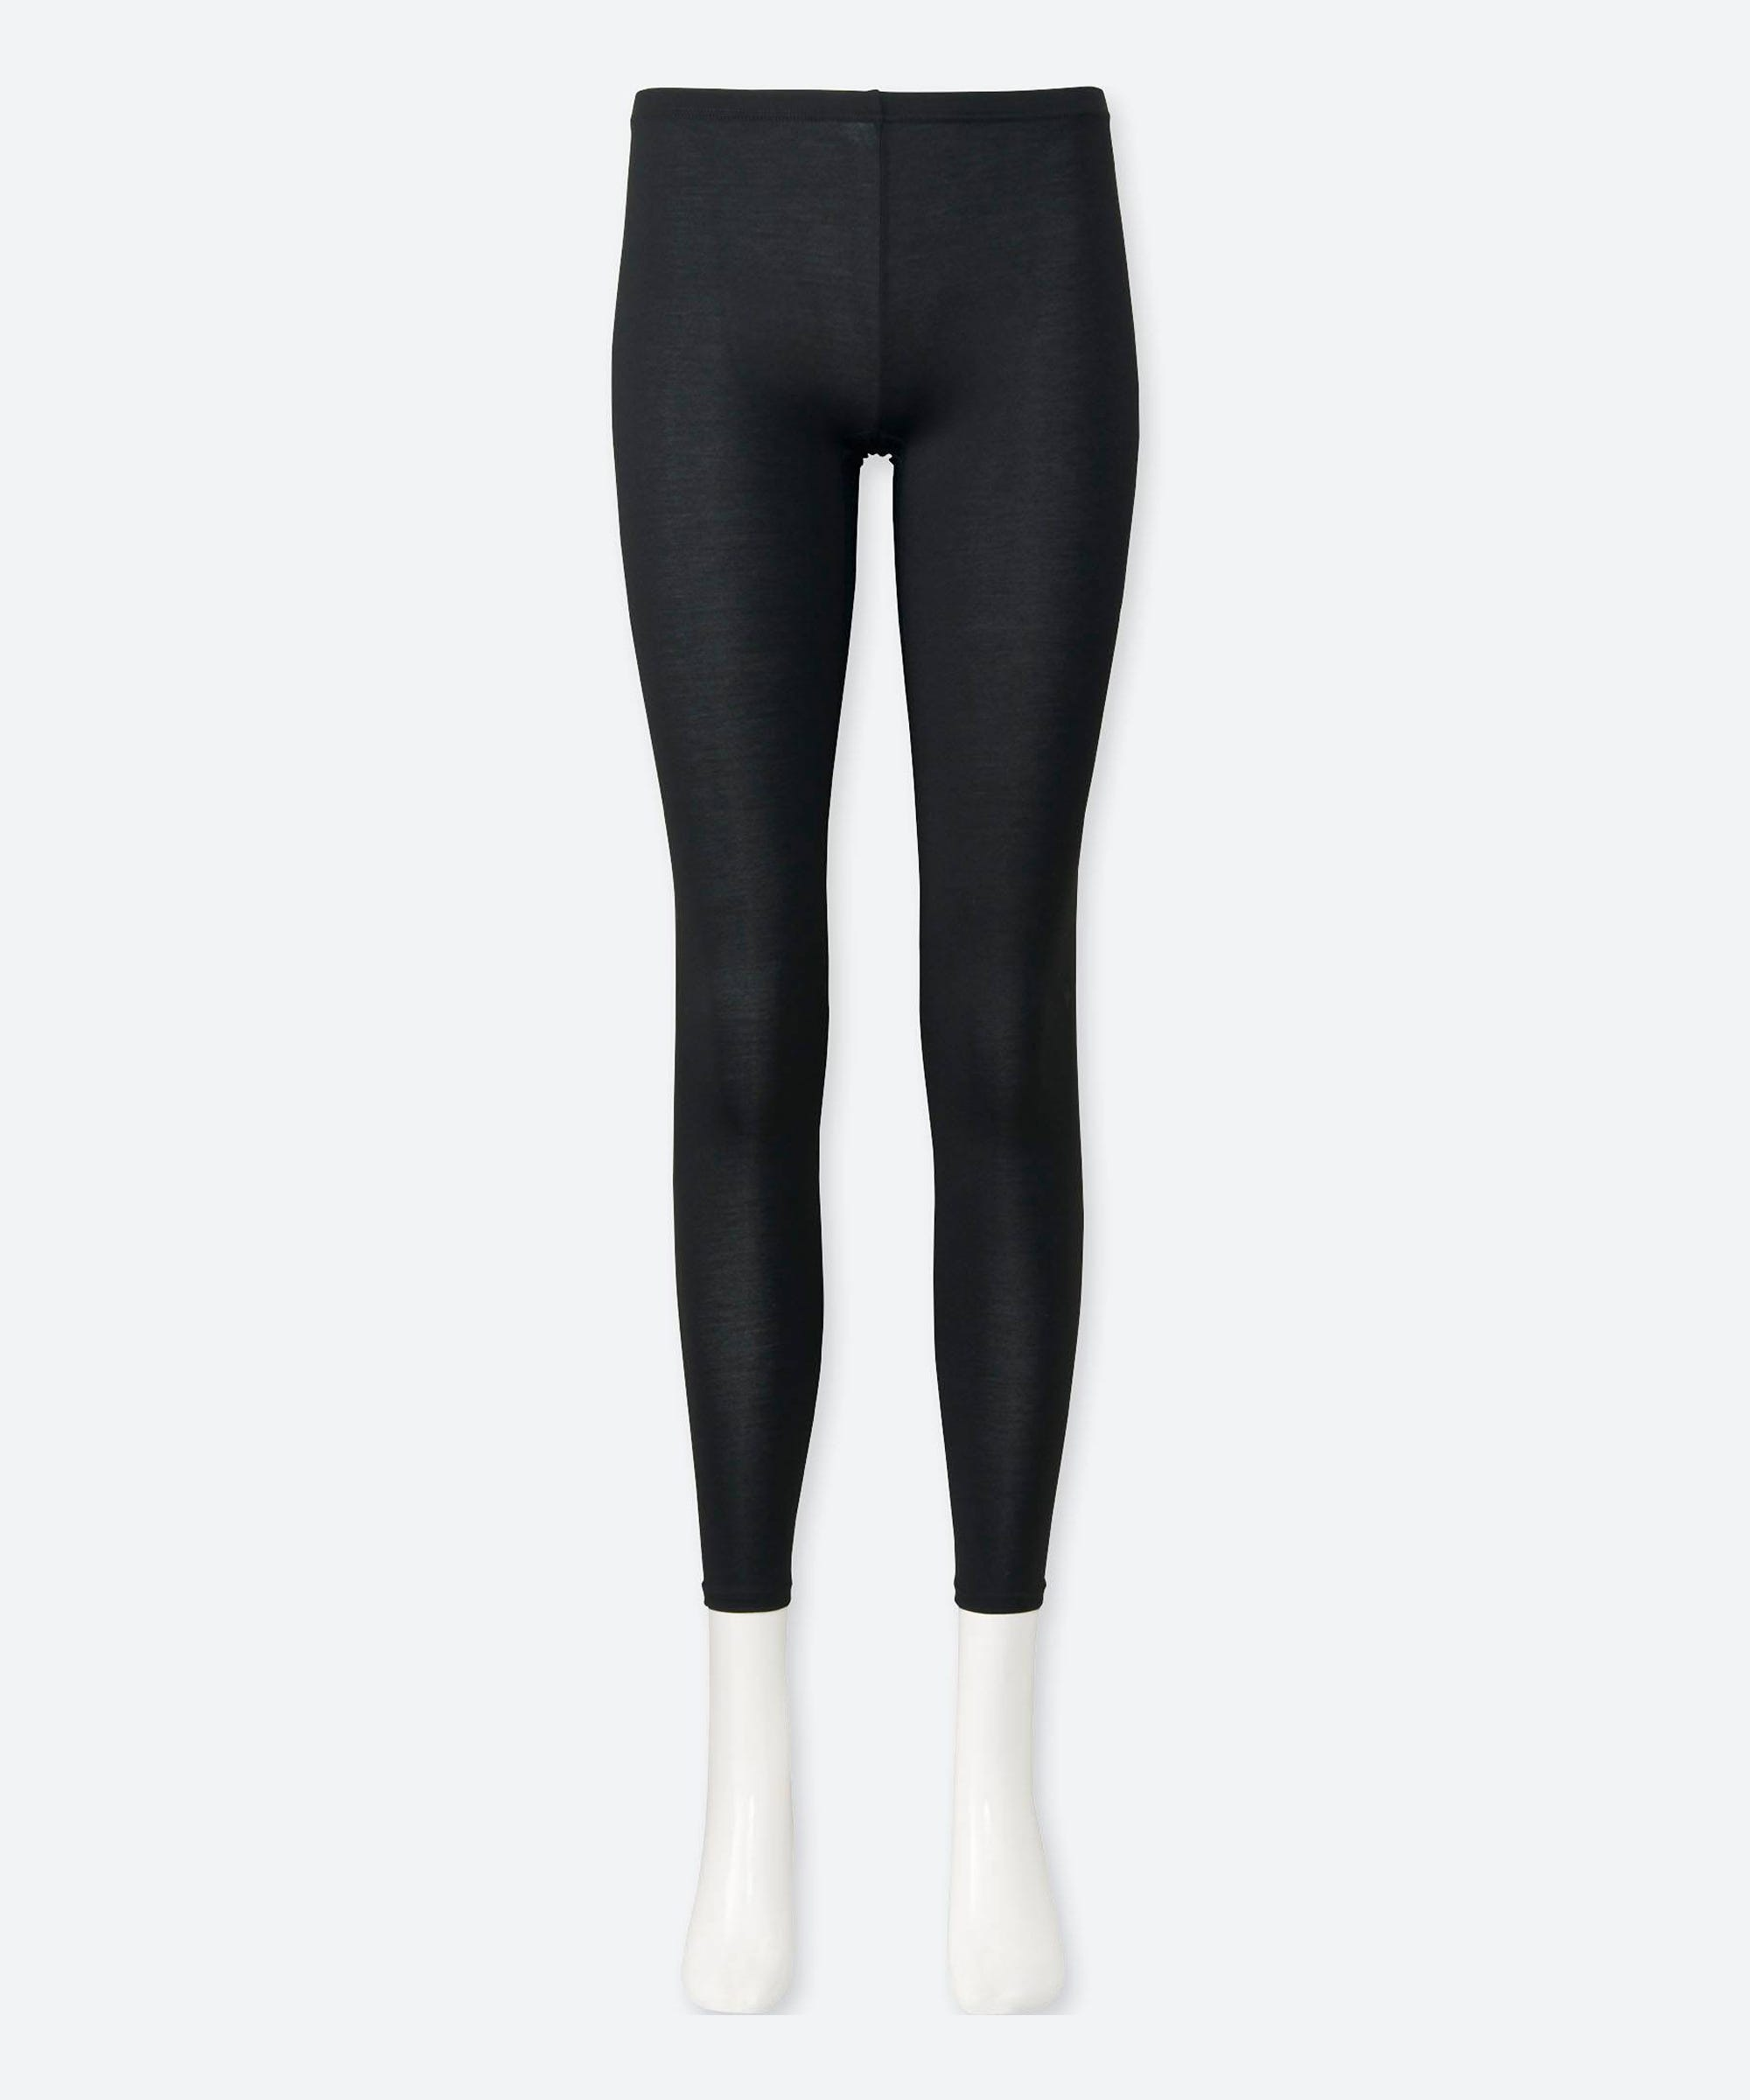 7502304bfe Best Warm Leggings For Winter Workouts Clothes